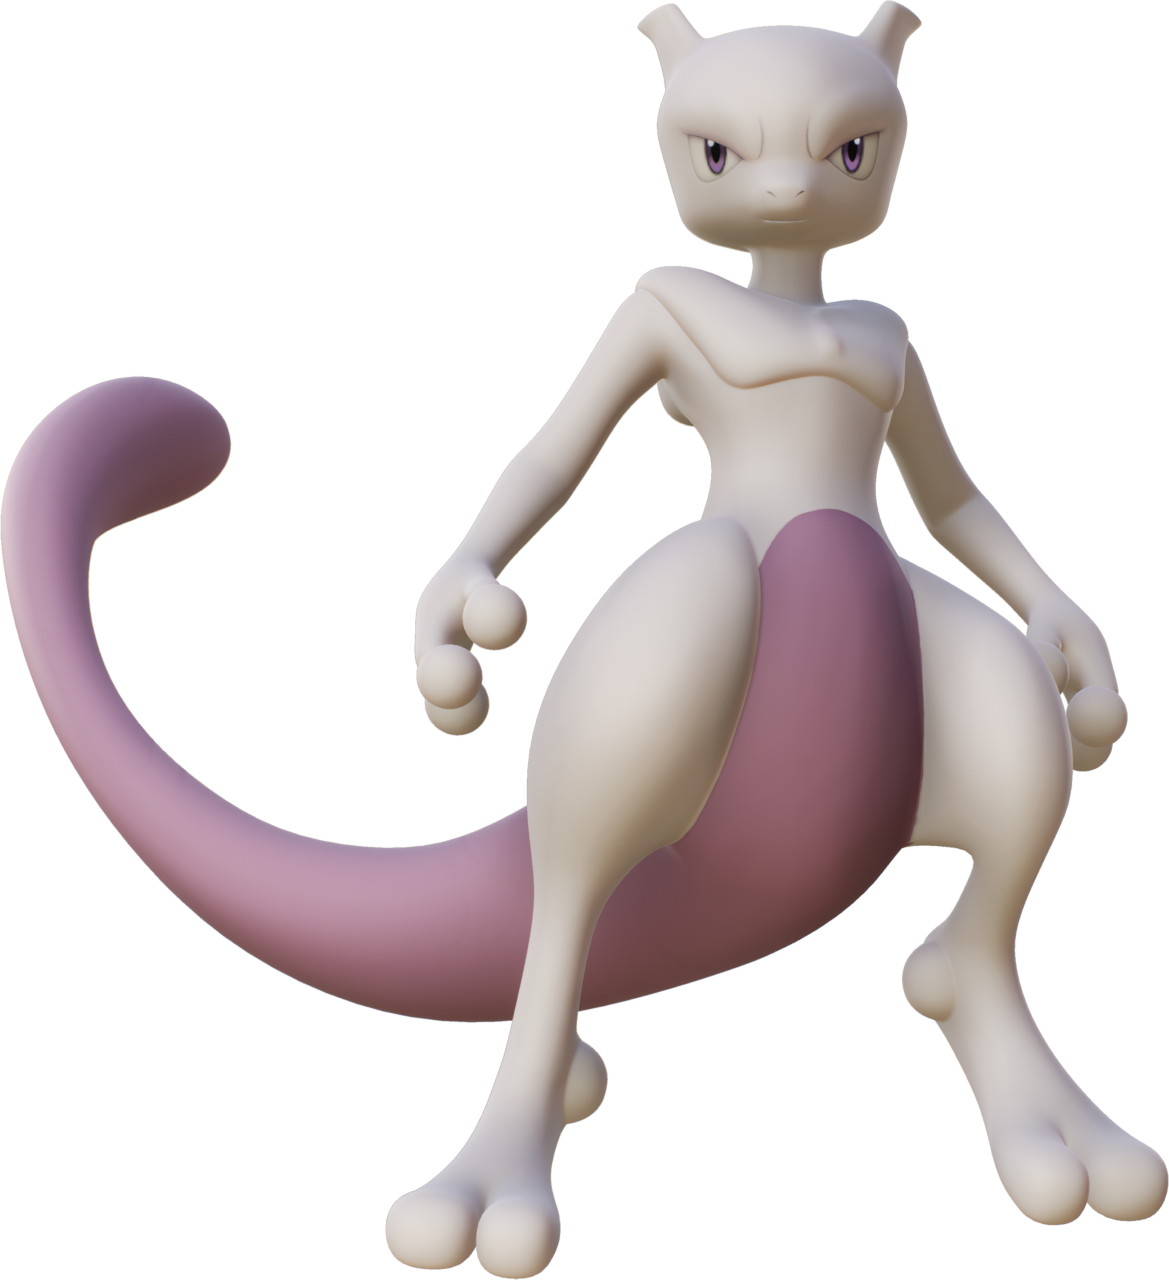 Image mewtwo pikachu png. Detective clipart fox